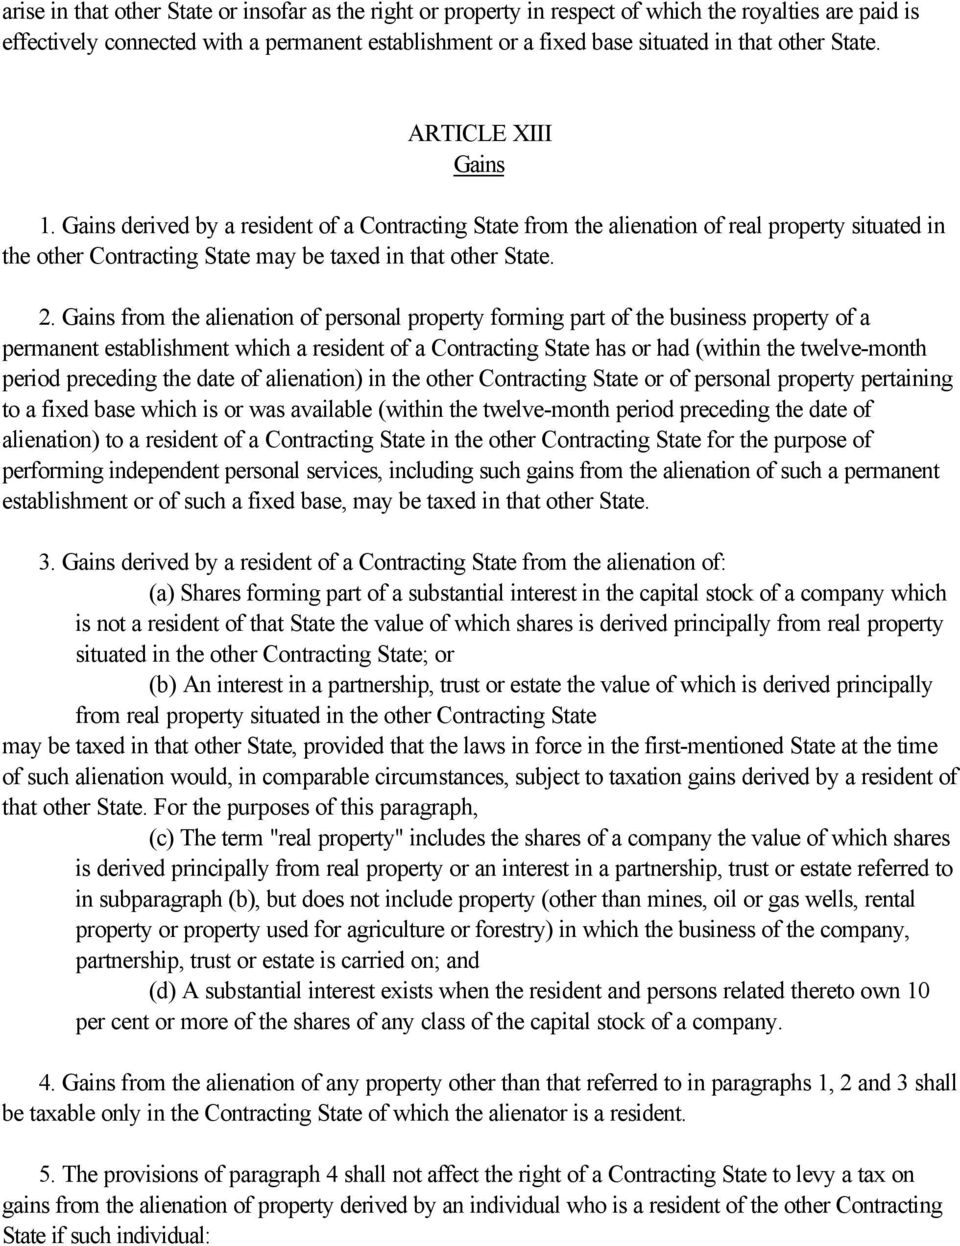 Gains from the alienation of personal property forming part of the business property of a permanent establishment which a resident of a Contracting State has or had (within the twelve-month period